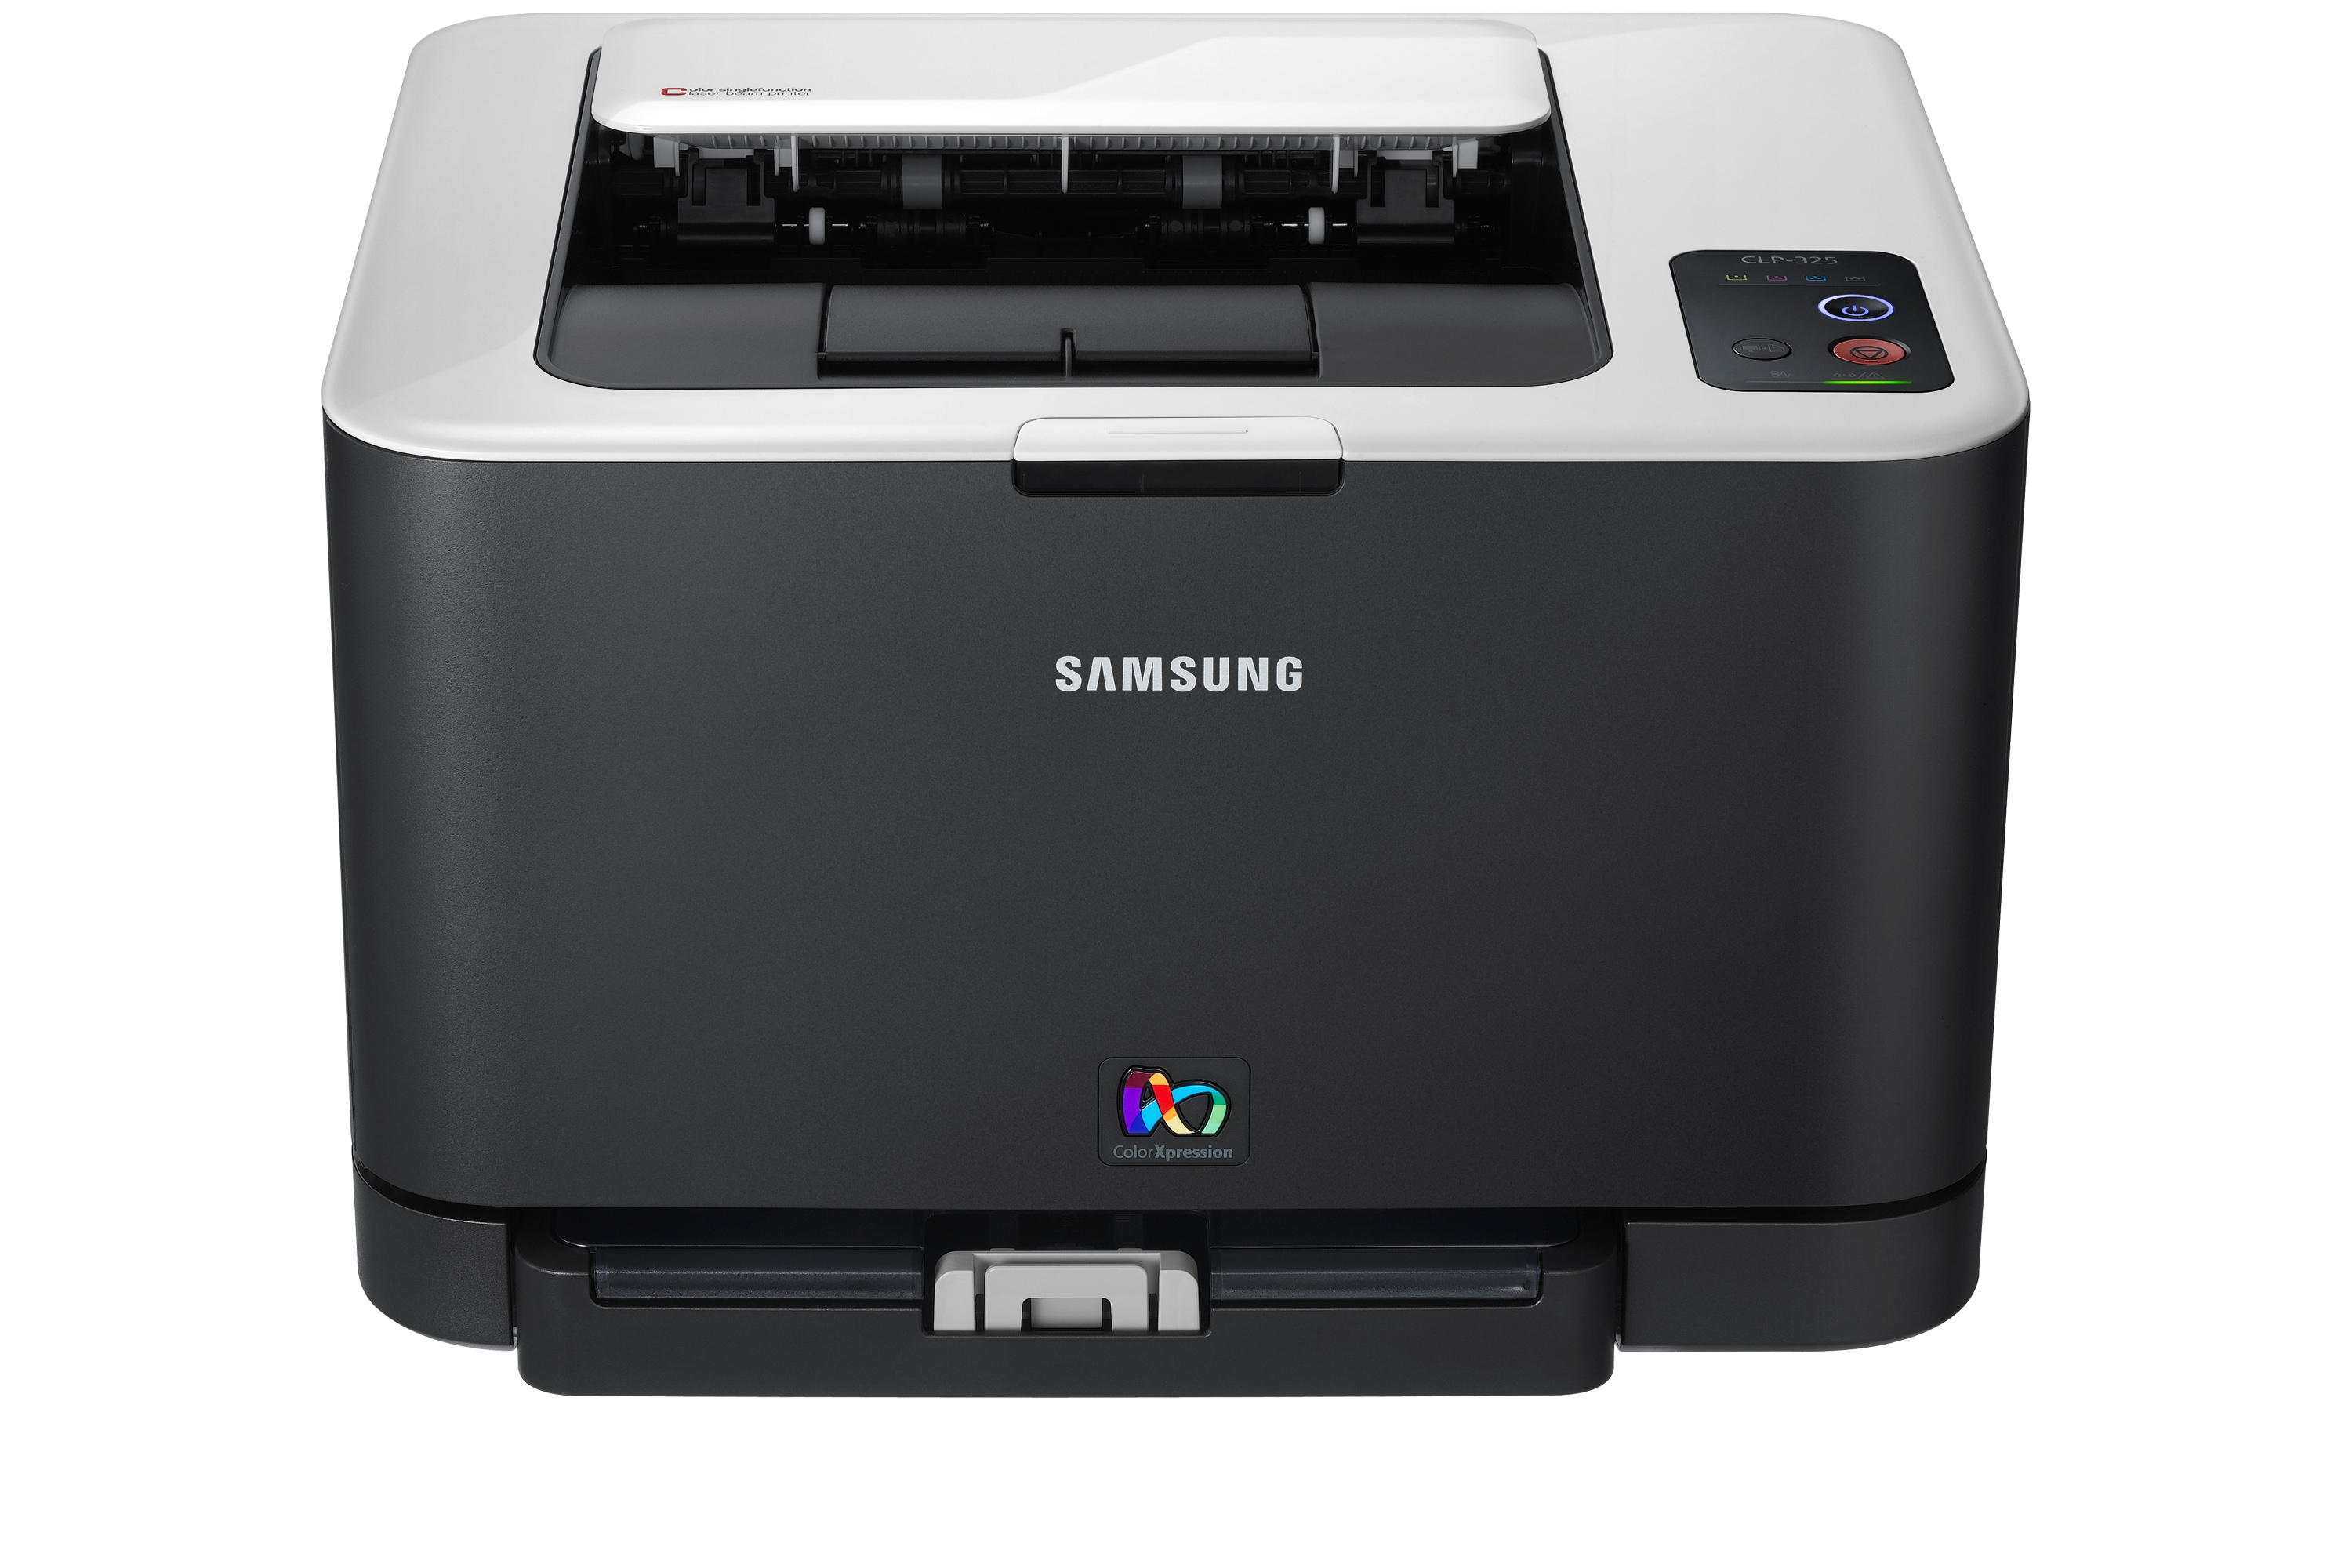 16 ppm Colour Laser Printer CLP-325W